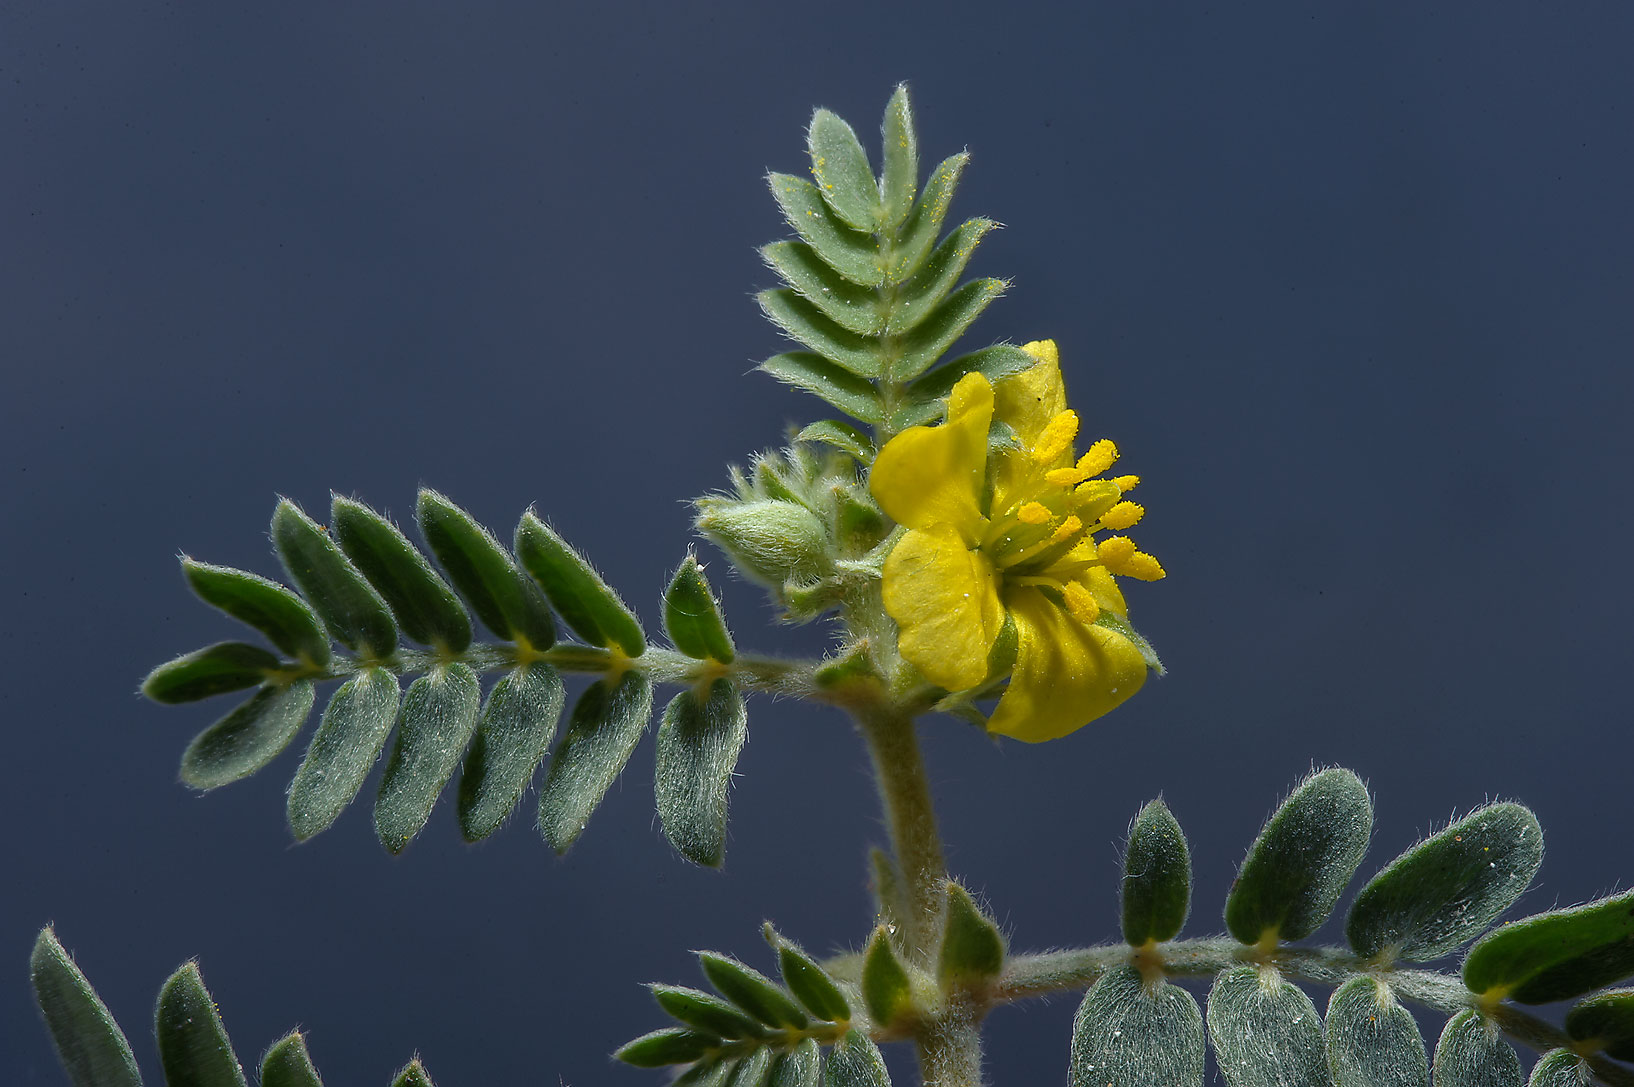 Tribulus pentandrus with a flower taken from Abu Nahlah Rd., south from Doha. Qatar